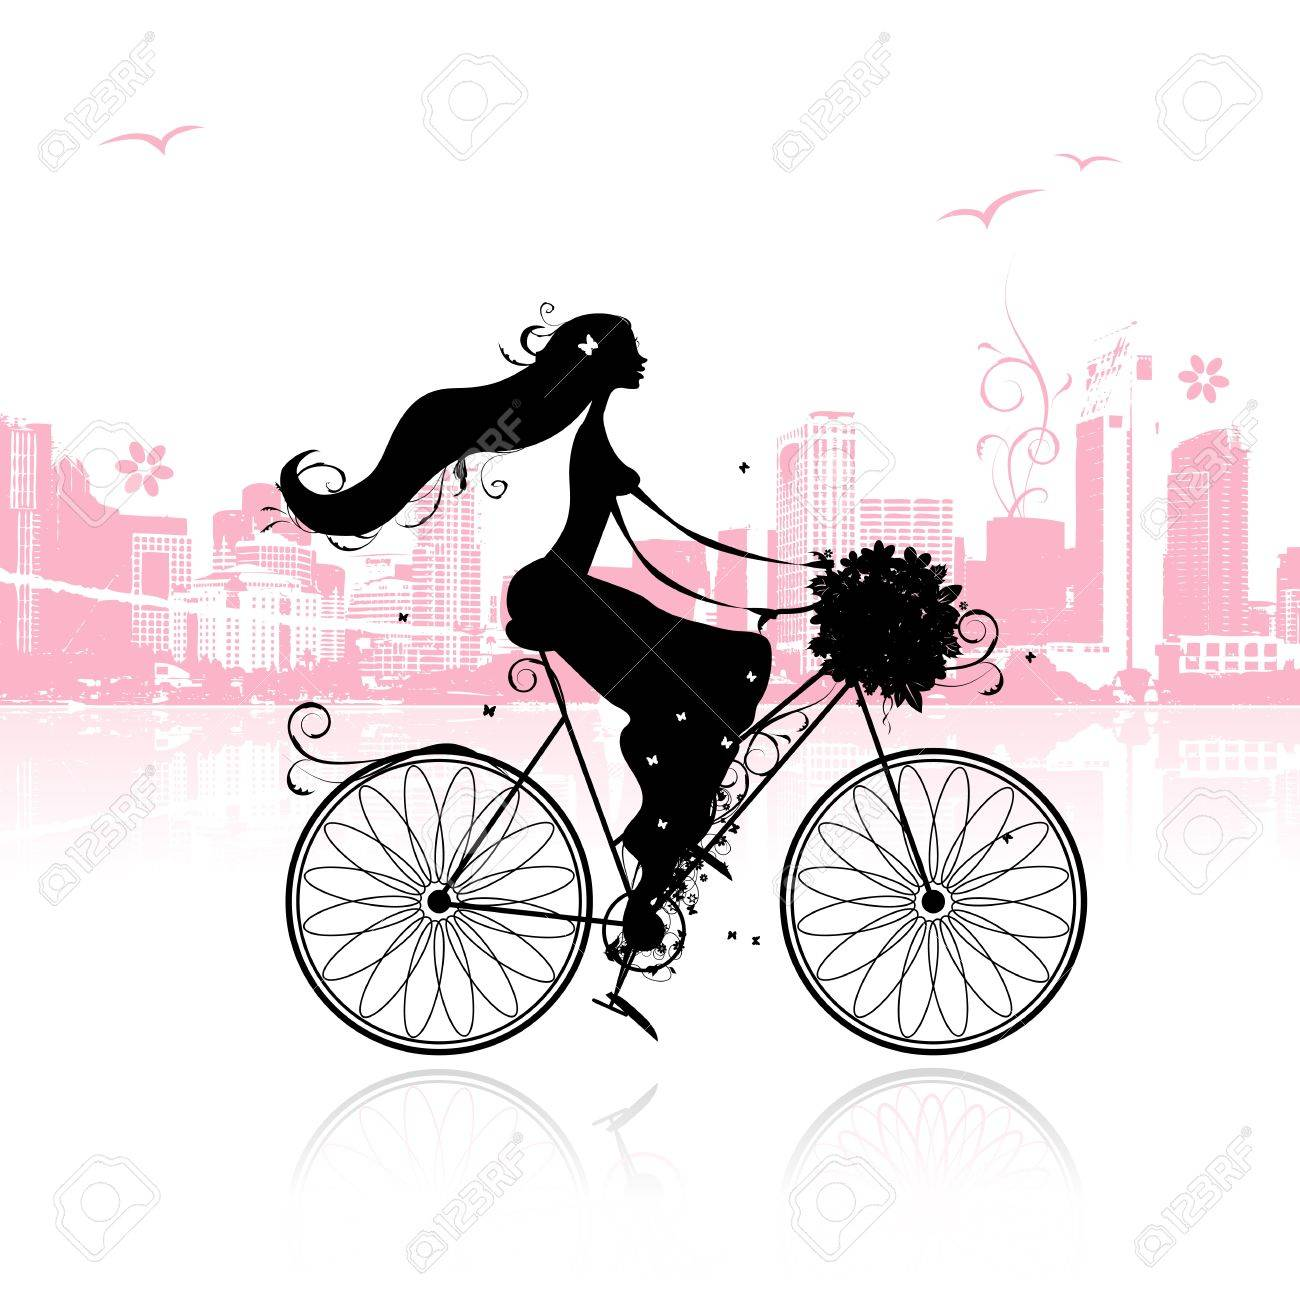 Girl with floral bouquet cycling in the city Stock Vector - 11009569